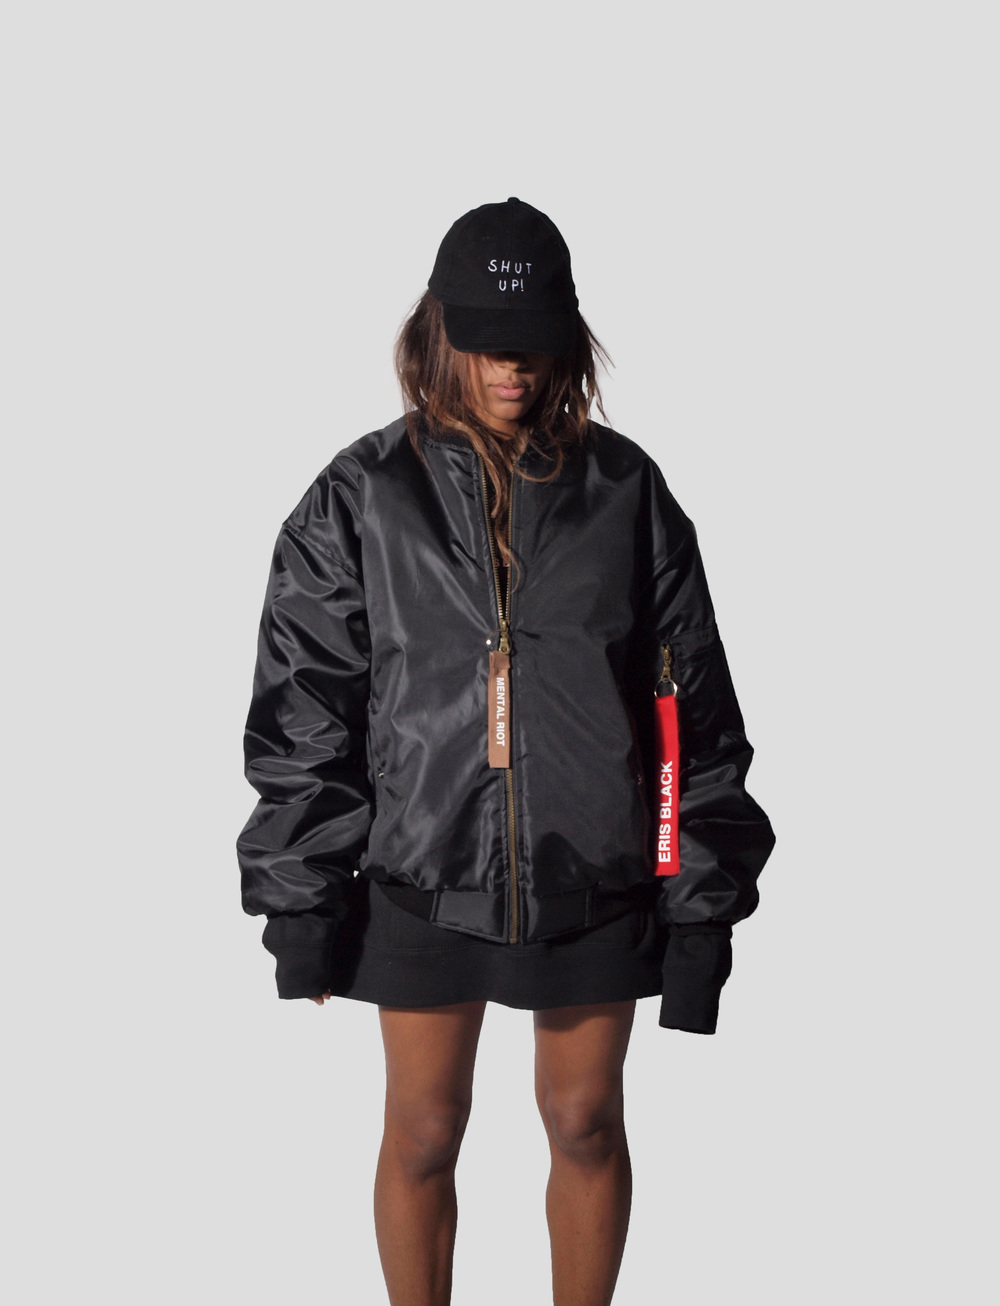 ERIS BLACK - BOMBER JACKET